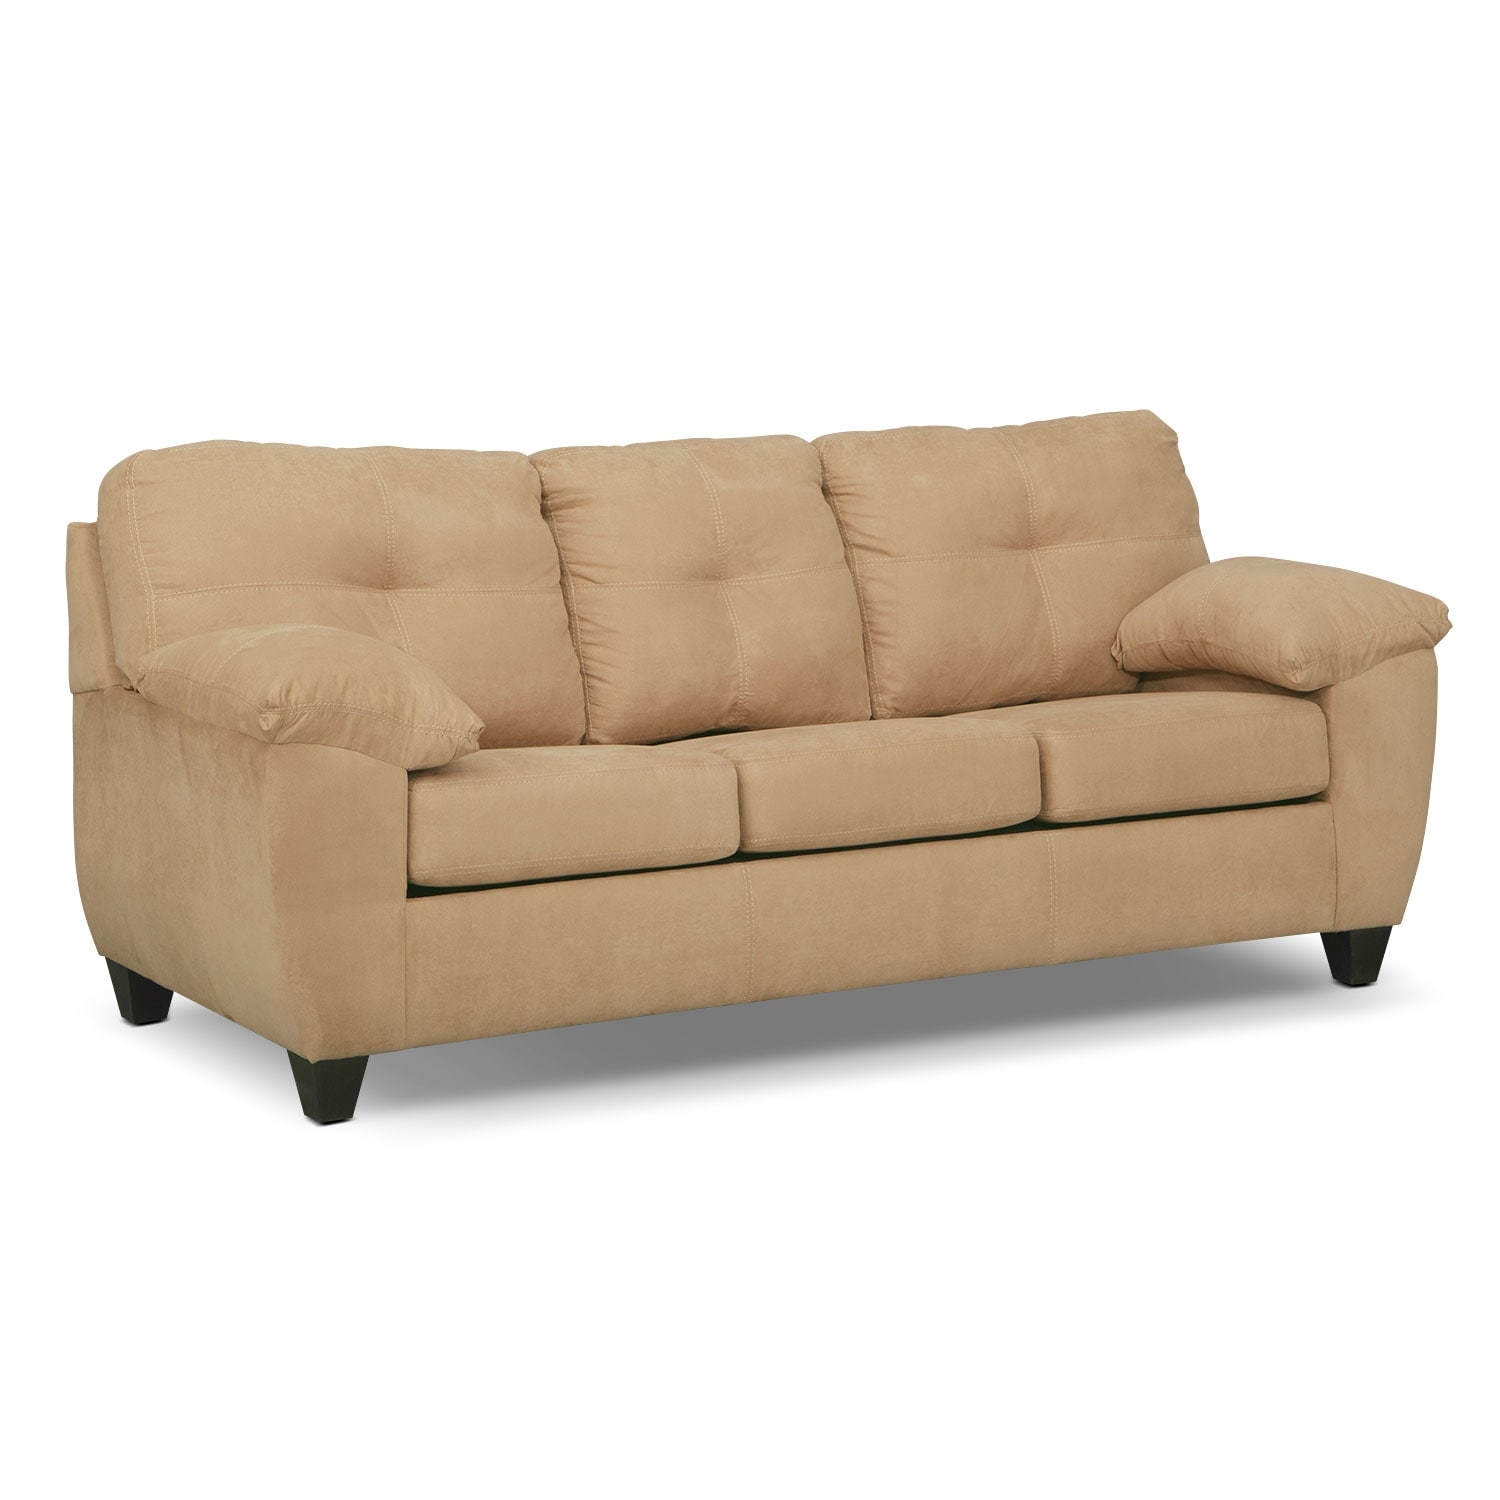 Rialto Queen Memory Foam Sleeper Sofa - Camel